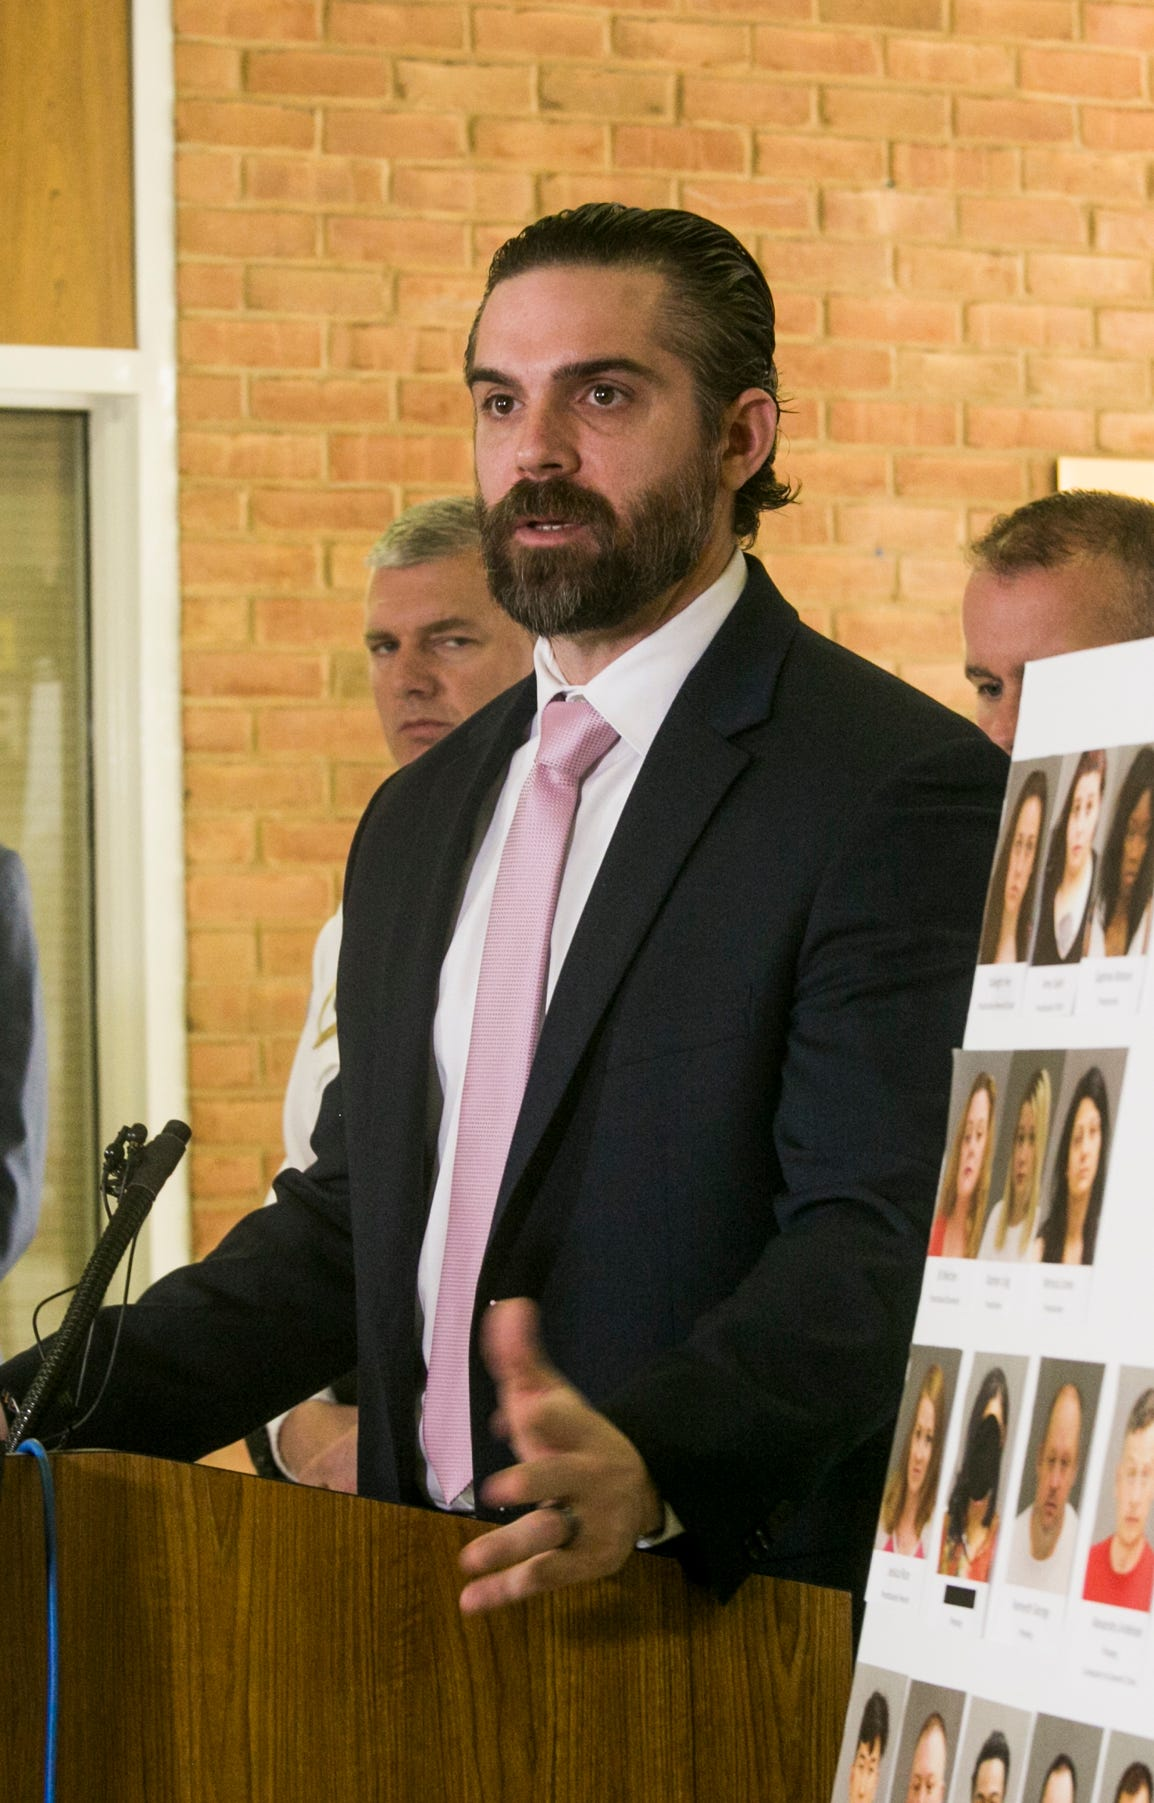 Warren Police Detective Craig Bakawoski speaks at a press conference Friday announcing the dismantling of a prostitution ring in Warren hotels.